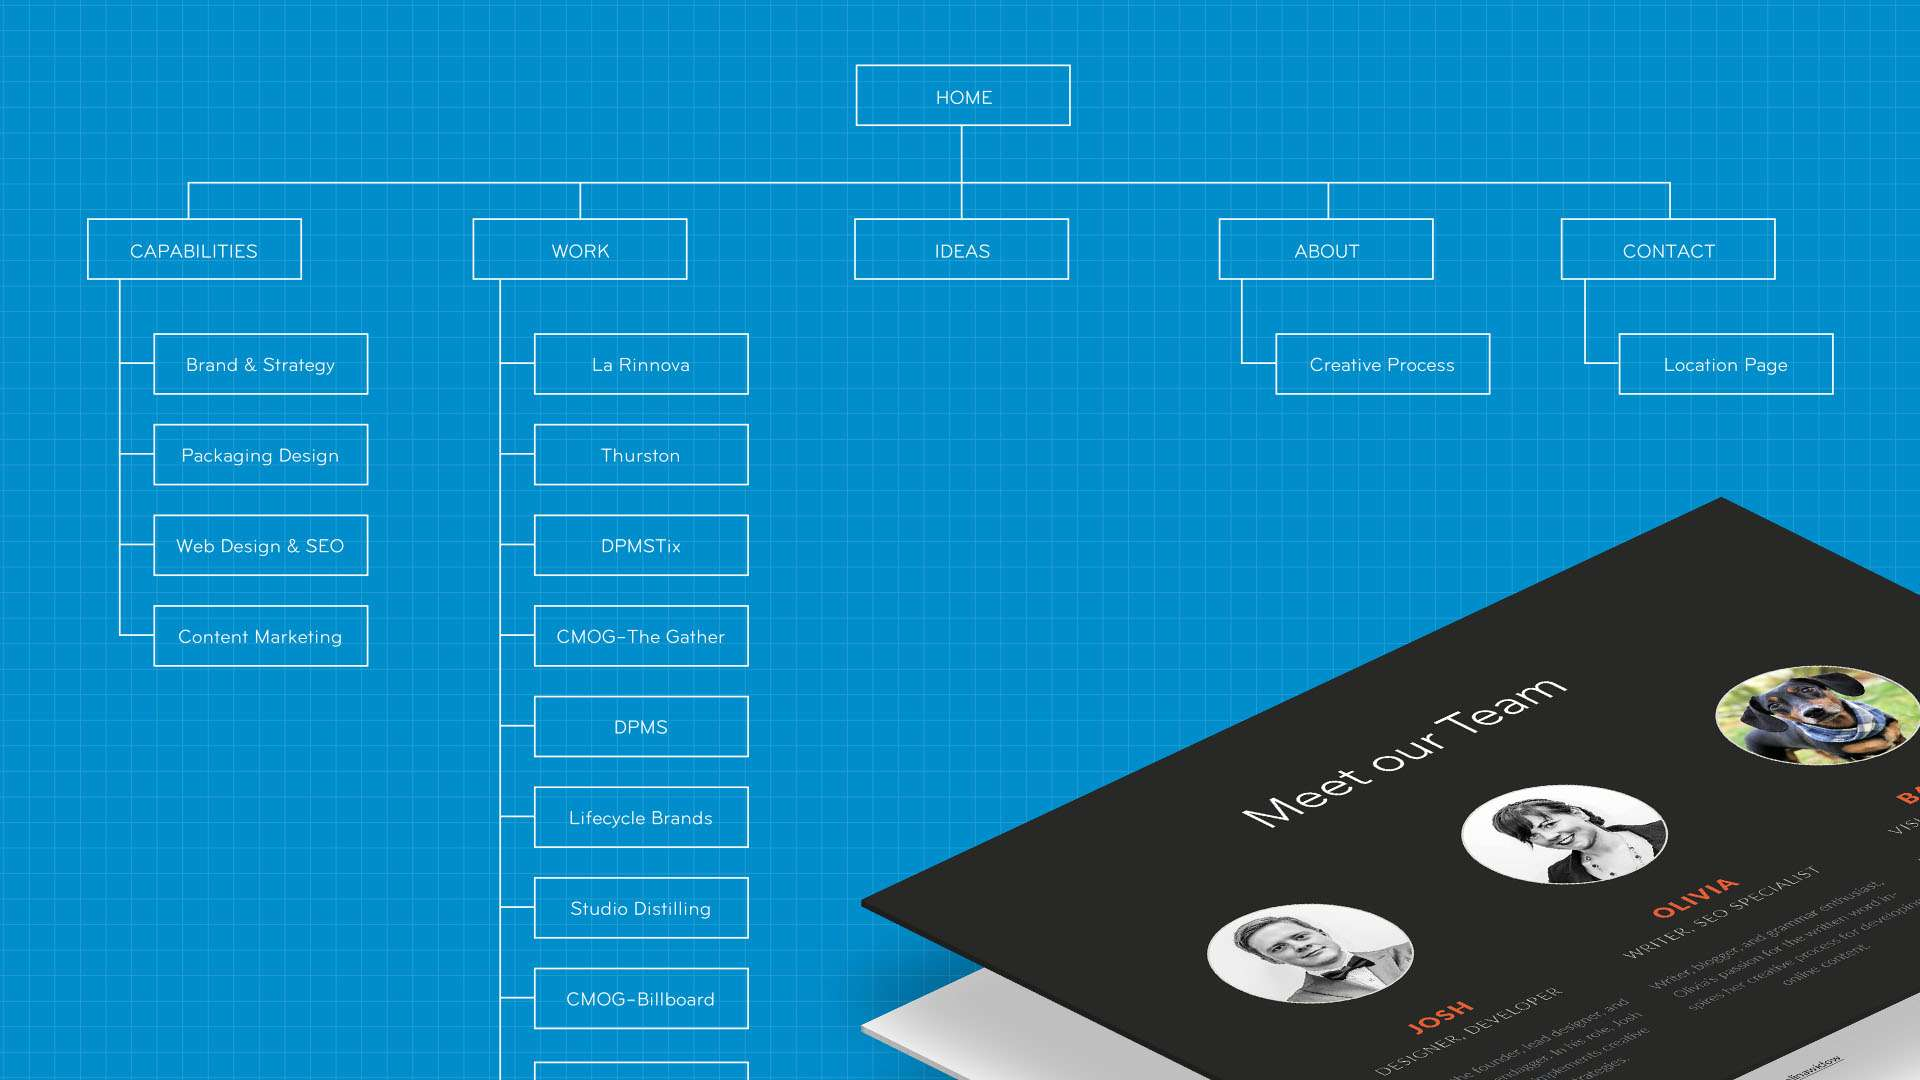 Site map design for information architecture, including navigation, calls to action, and social links.